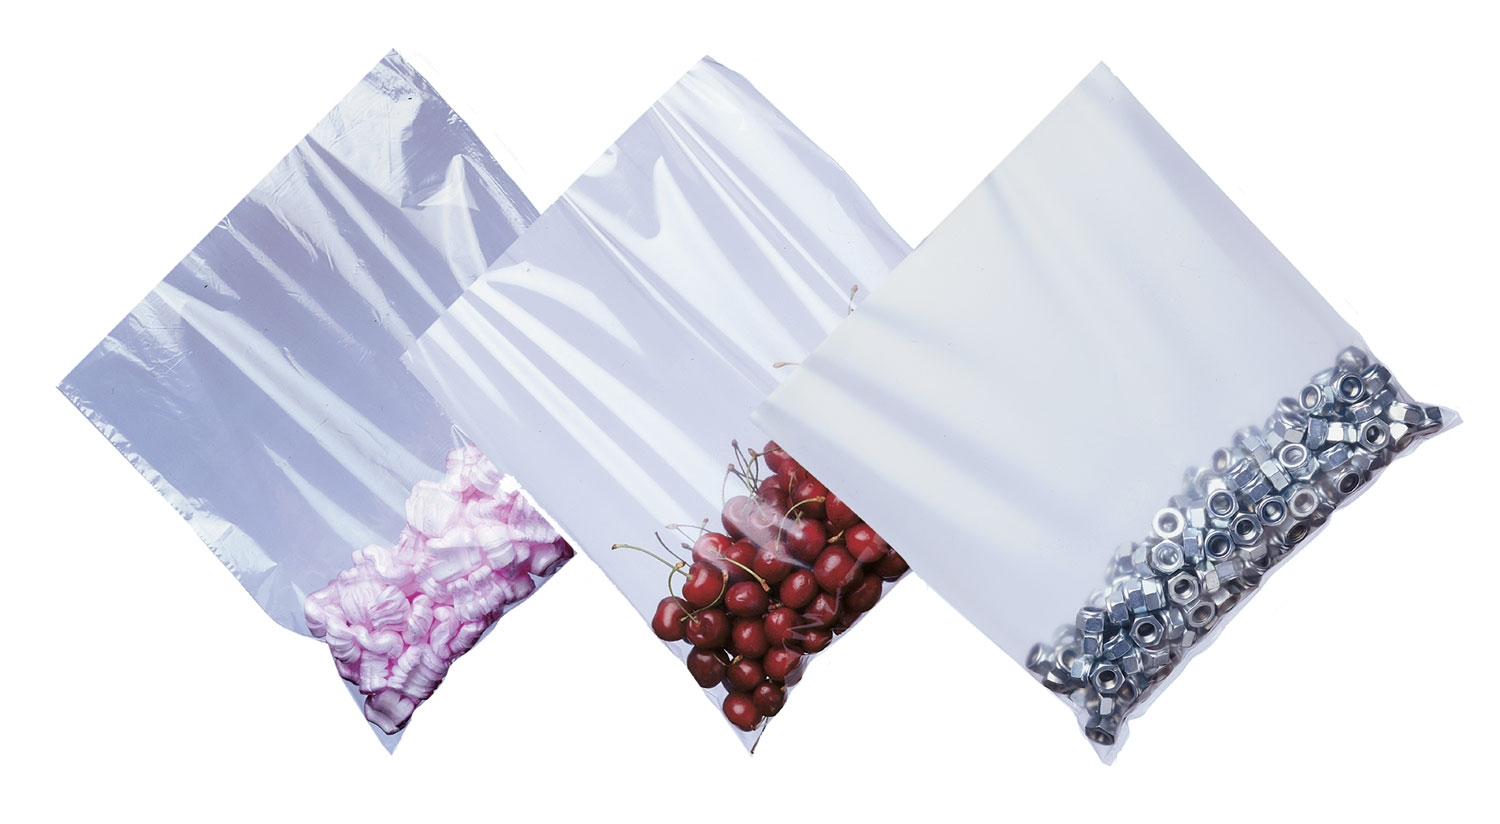 4inch X 6inch Lightweight Clear Easy Opening Poly Bags